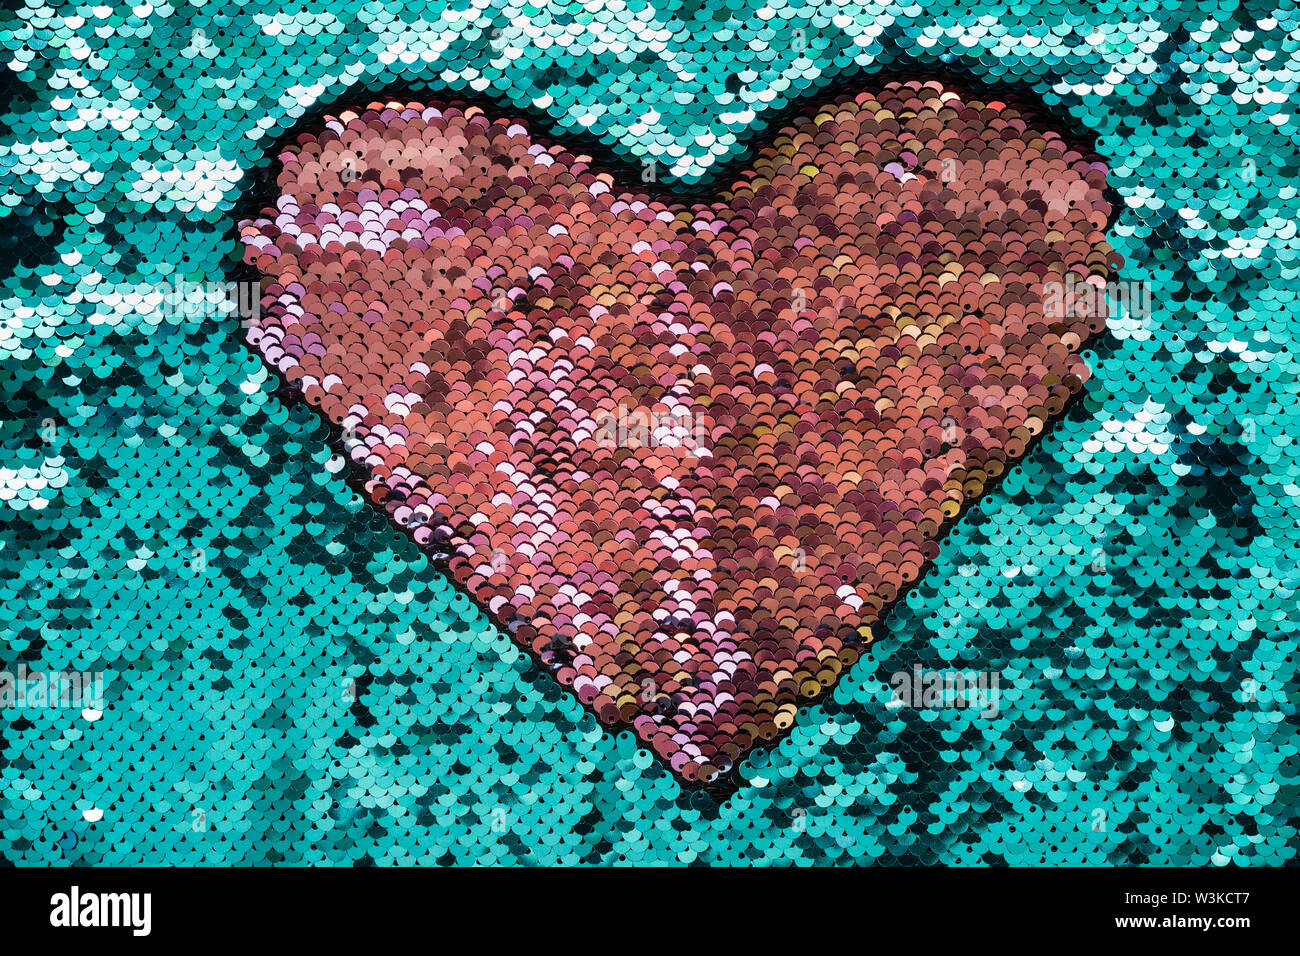 Coral heart made of sequins on turquoise background. Shiny fabric texture. - Stock Image